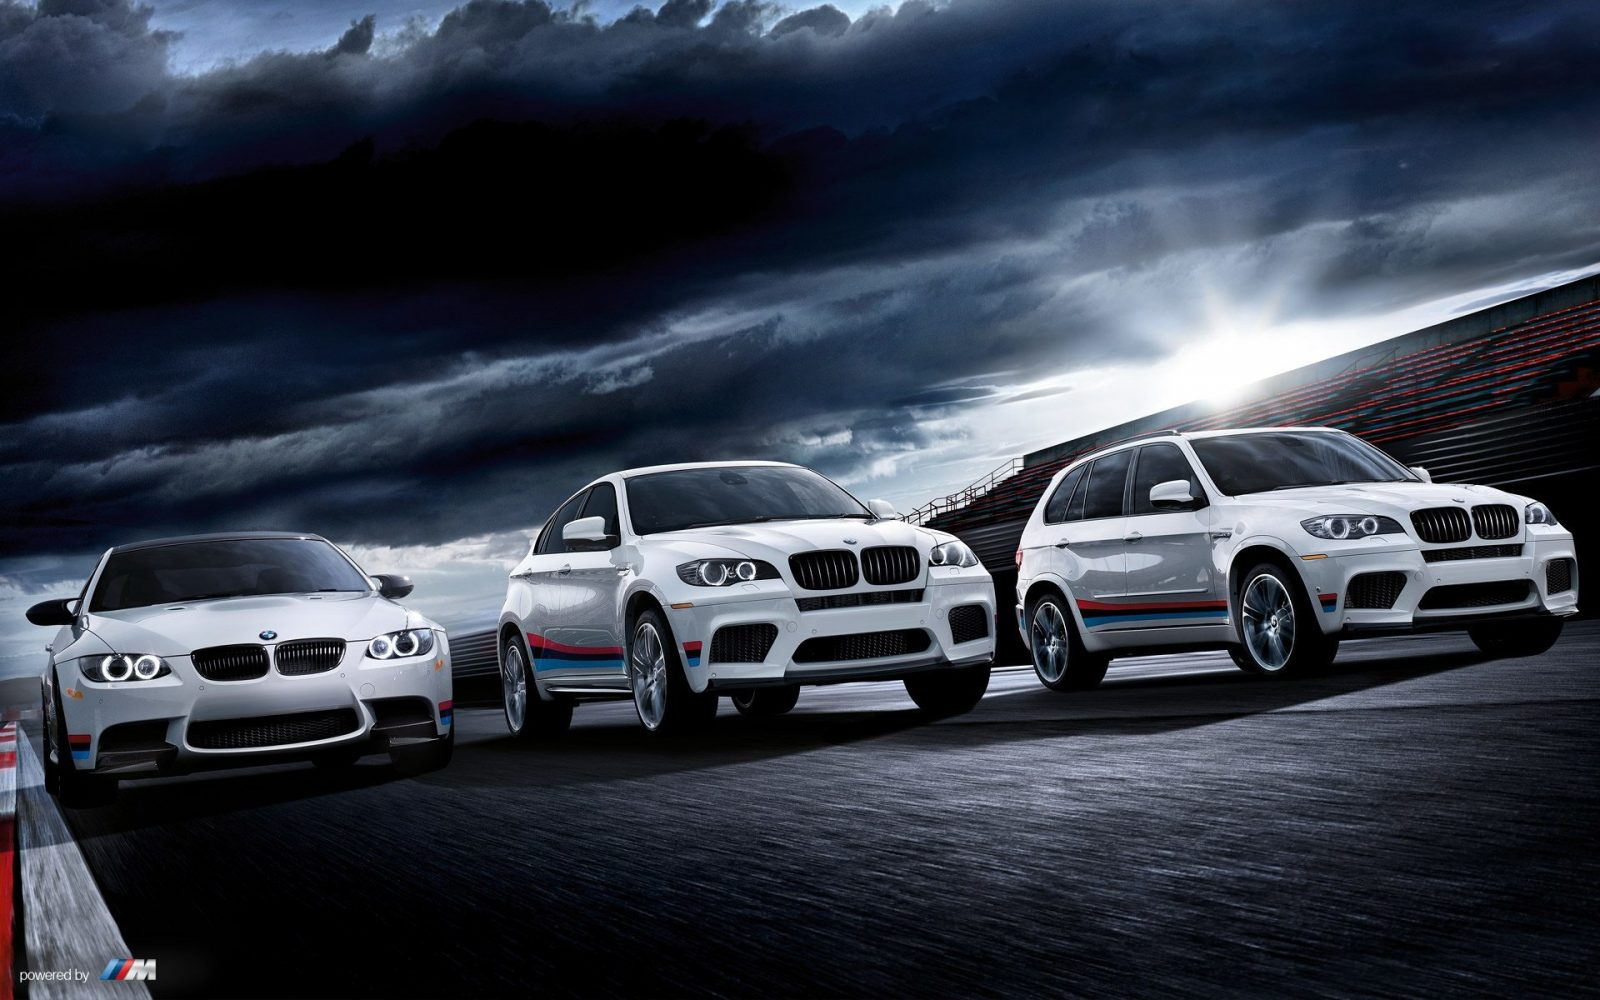 M Performance Catalog Offers Hundreds of Ways to Up the Drama and Road Presence of 335i, 535i, M3 and even the X5 and X6 59